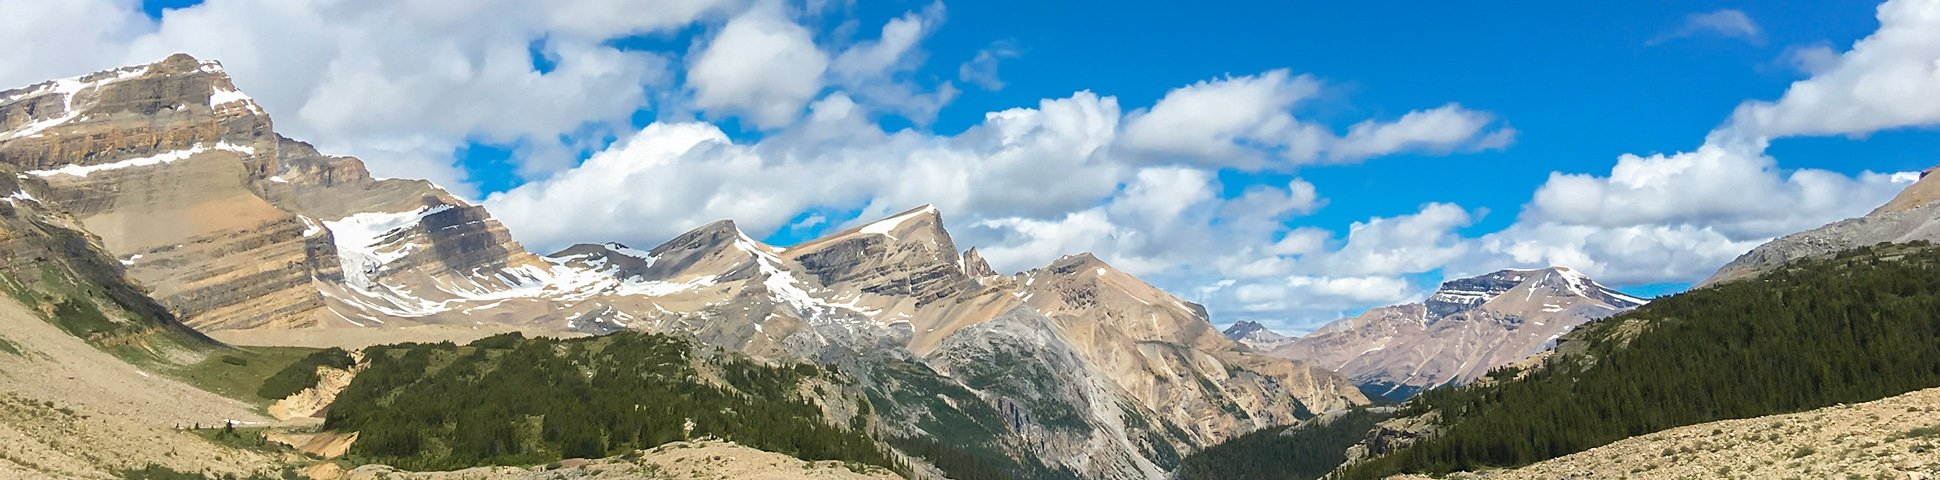 Hiking, biking and snowshoeing along Icefields Parkway in the Canadian Rockies